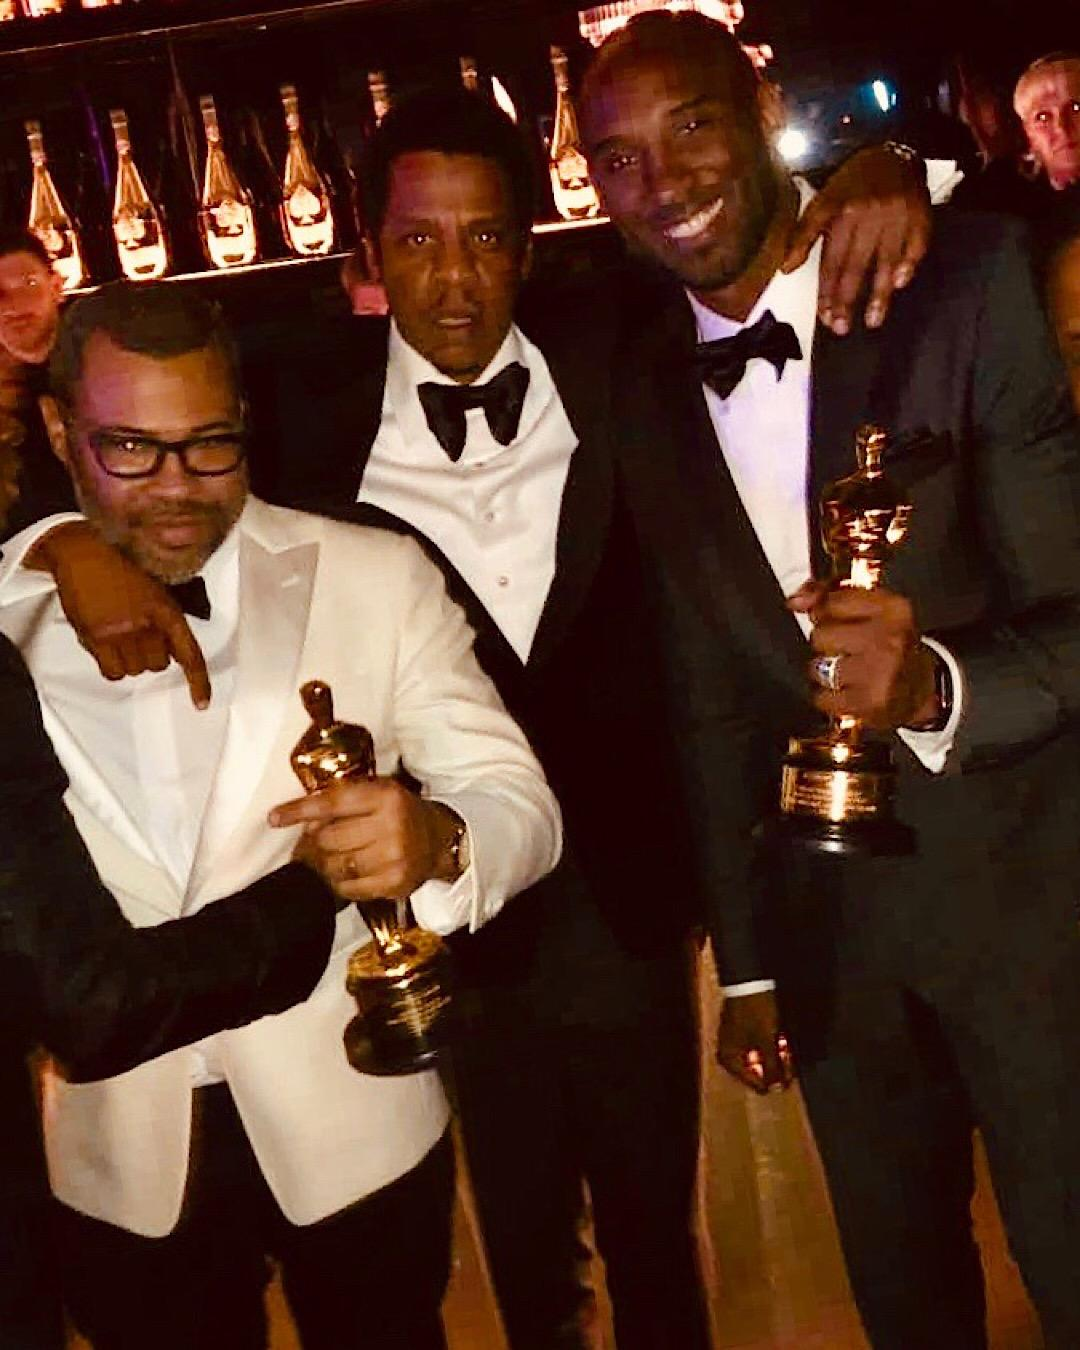 'For US by US. Congrats on the #1 movie in the world.'  - Hov https://t.co/Dbk1R1y2dp